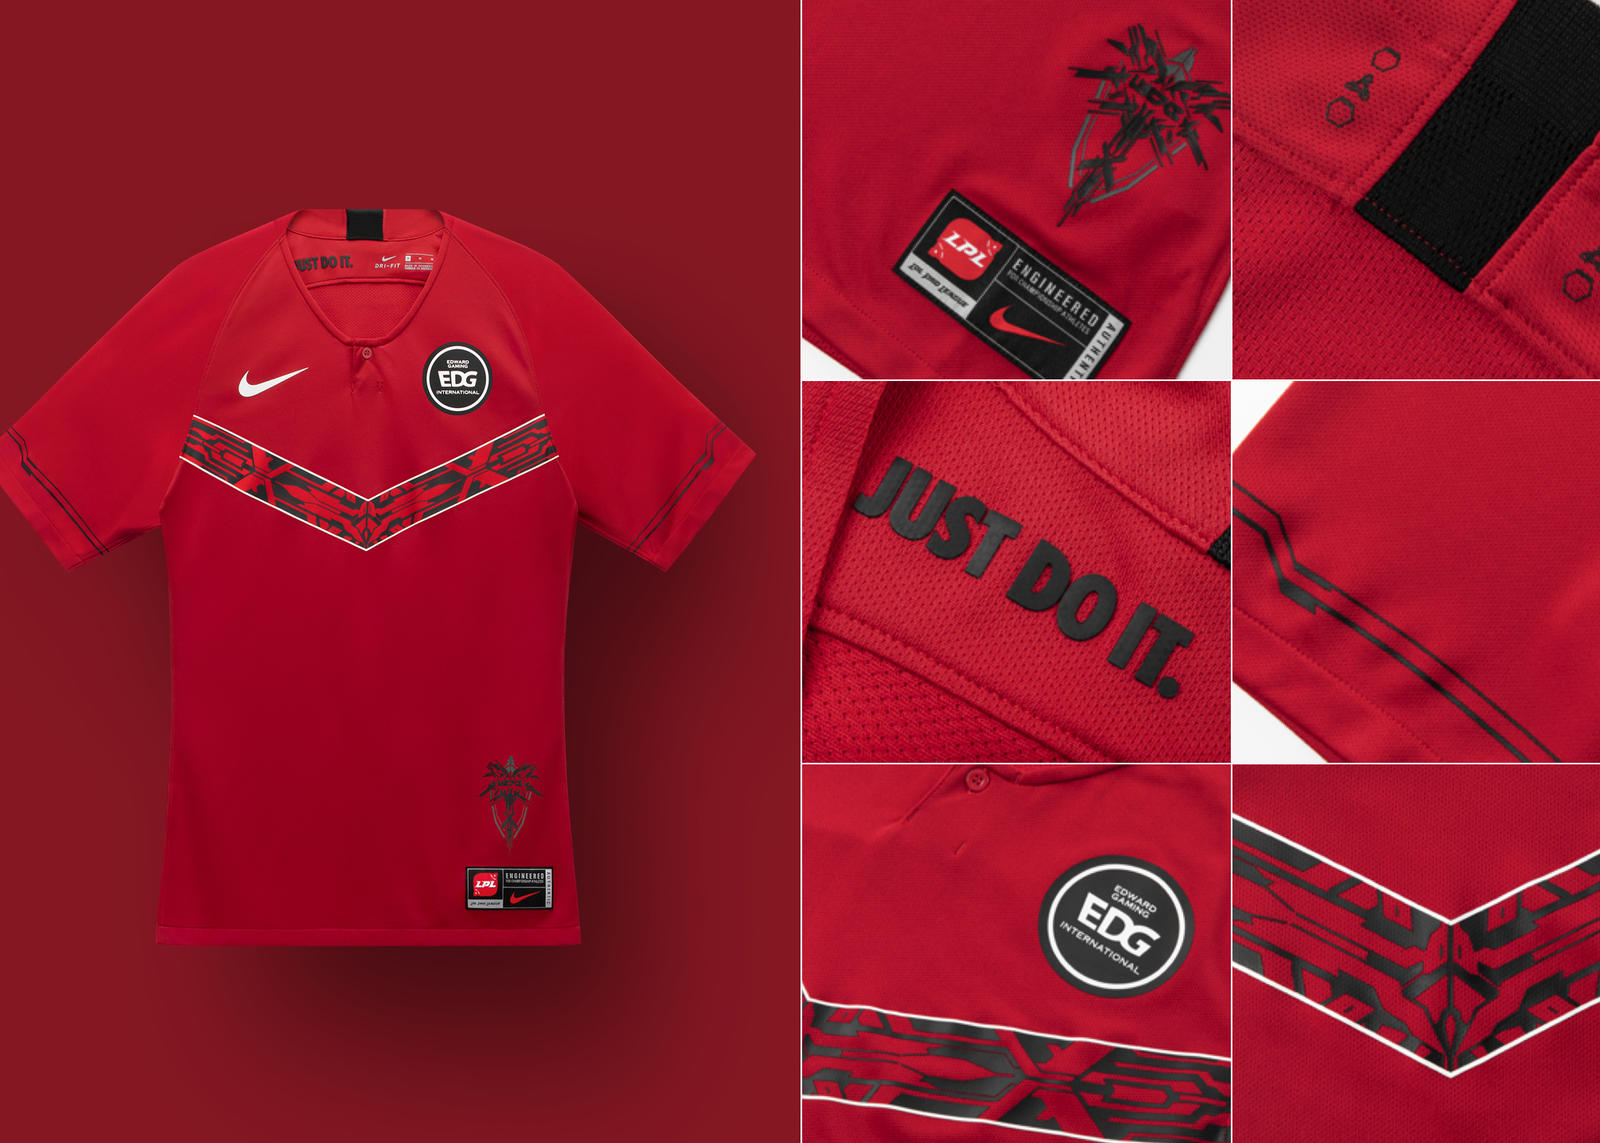 Nike unveils new jerseys for Chinese League of Legends teams - The ...